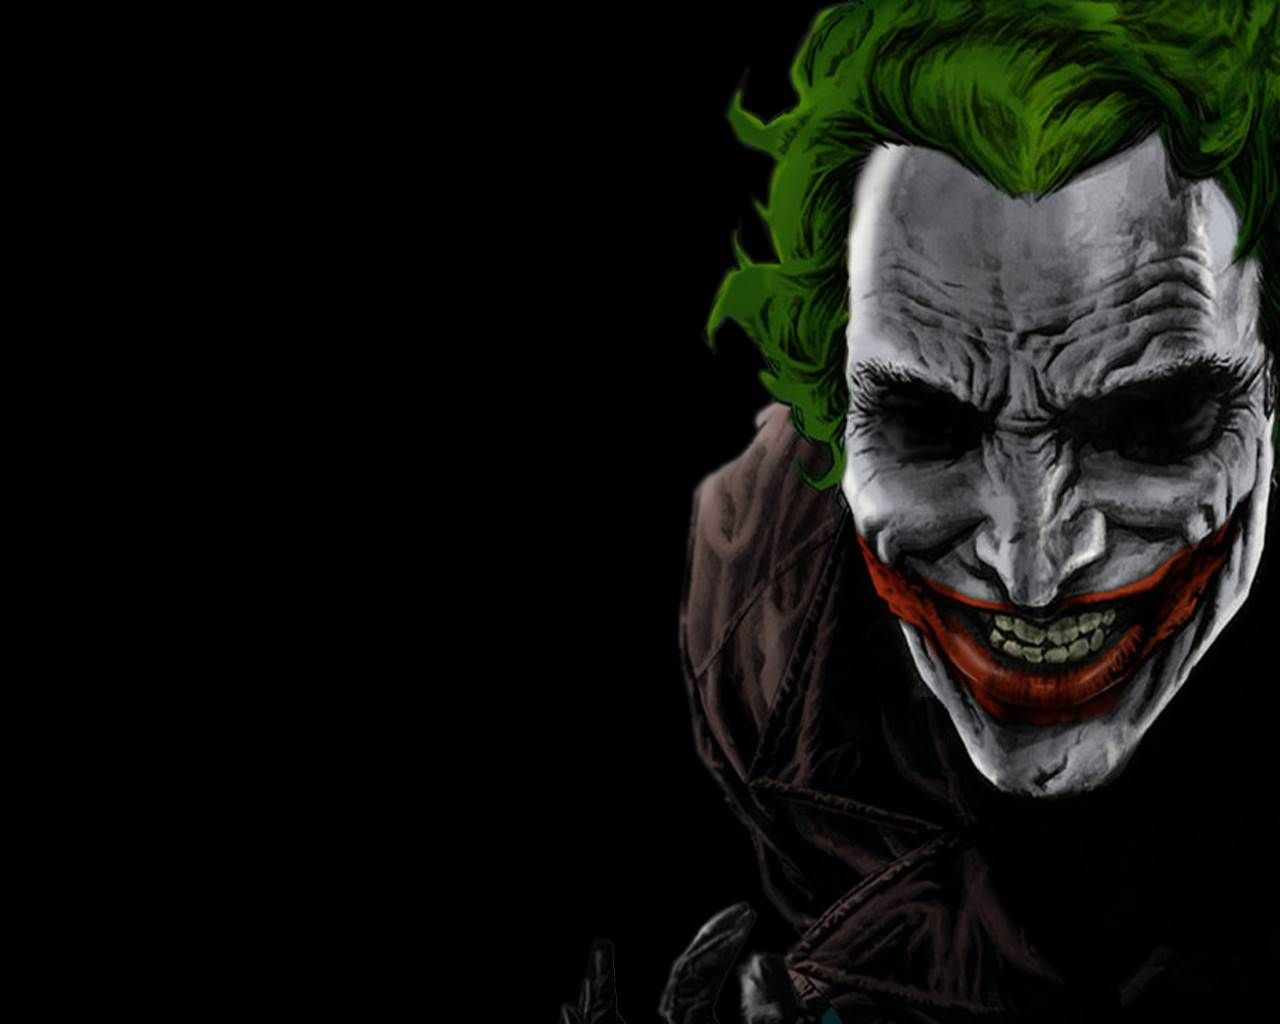 Joker Wallpapers High Quality Download Free 1280x1024 Images